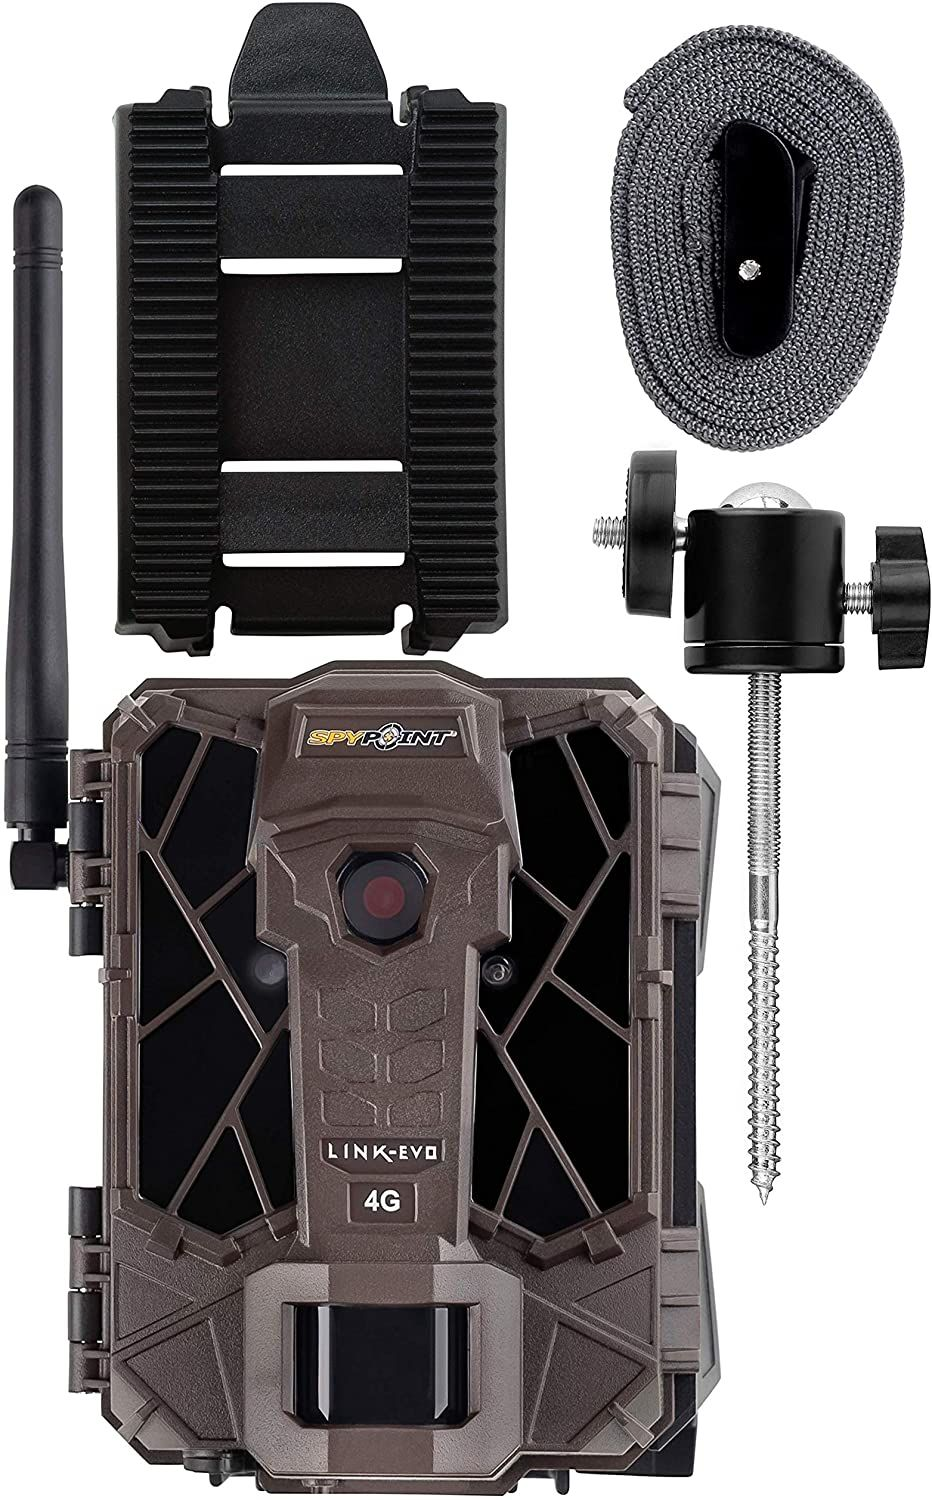 This AT & T trail camera uses 42 highpower LEDs for great